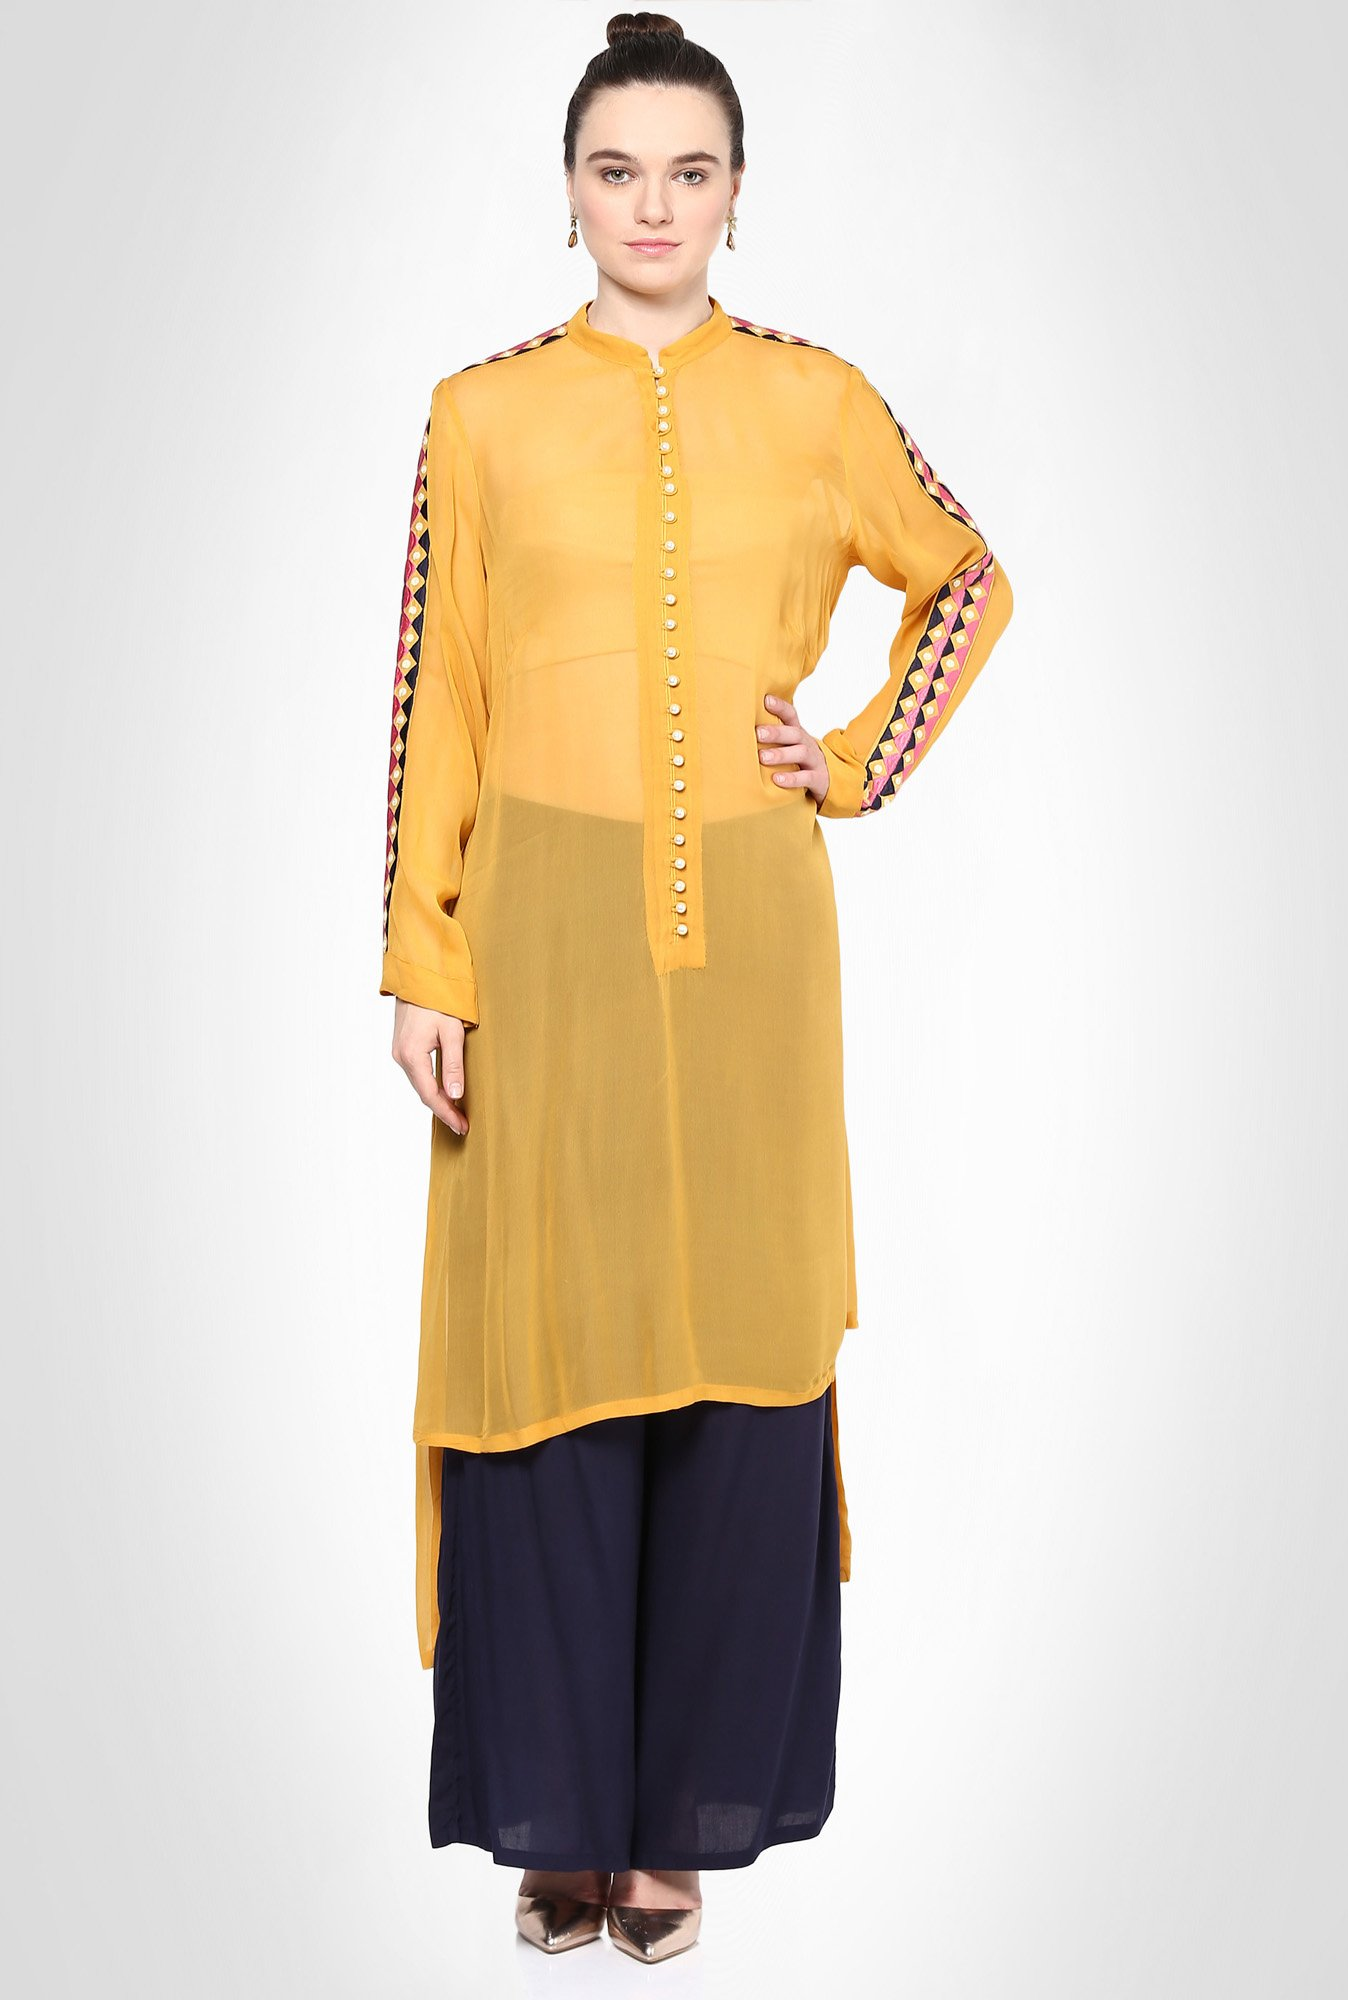 Saumya Pahwa Designer Wear Mustard Suit Set by Kimaya